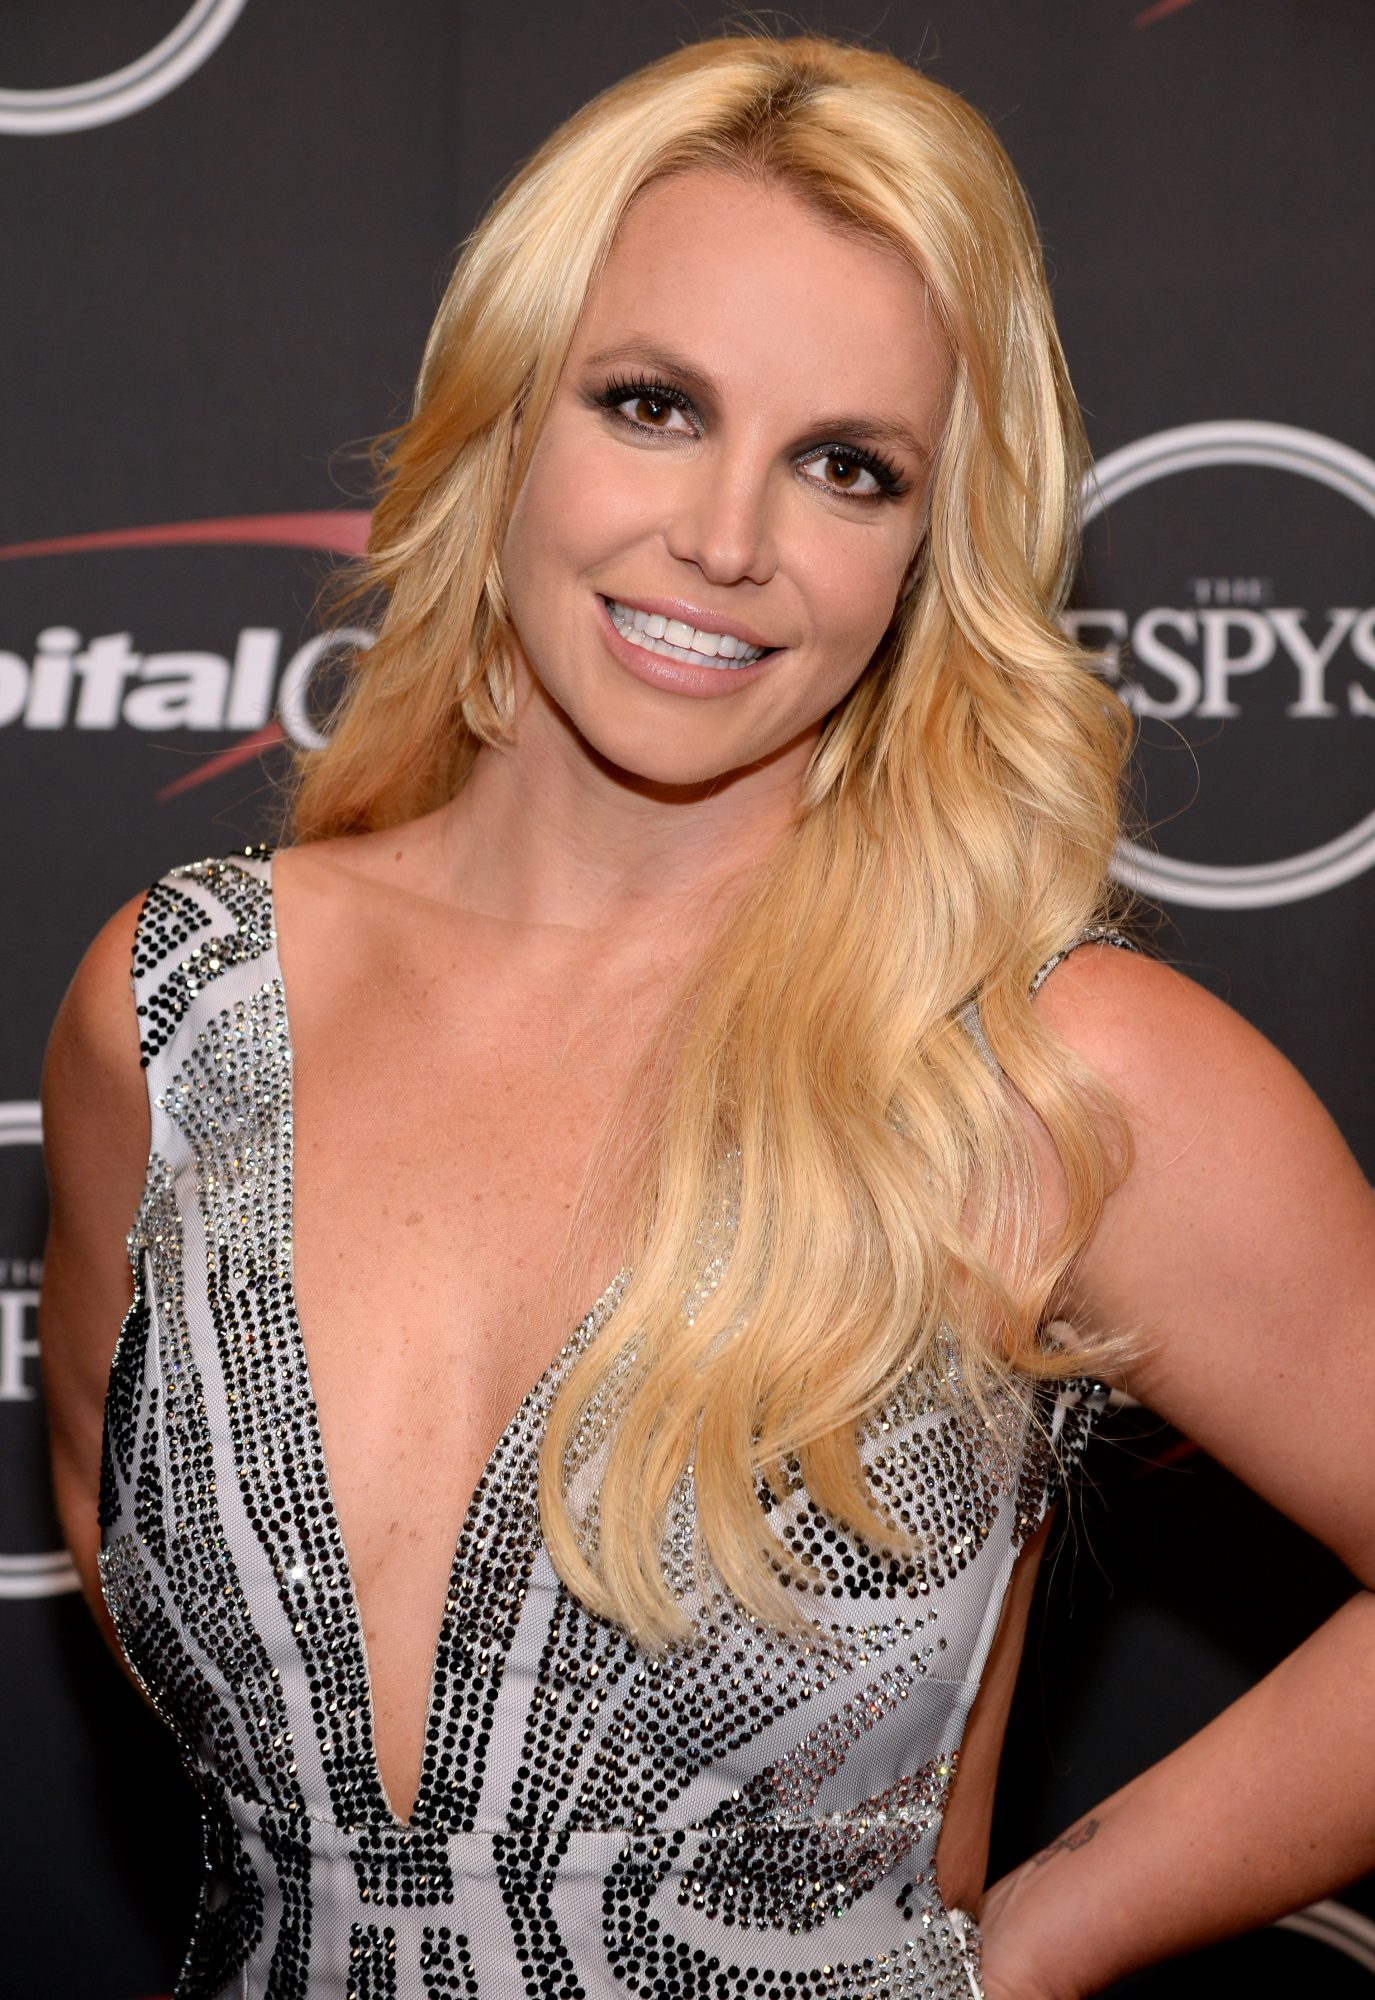 The 2015 ESPYS - Backstage And Audience